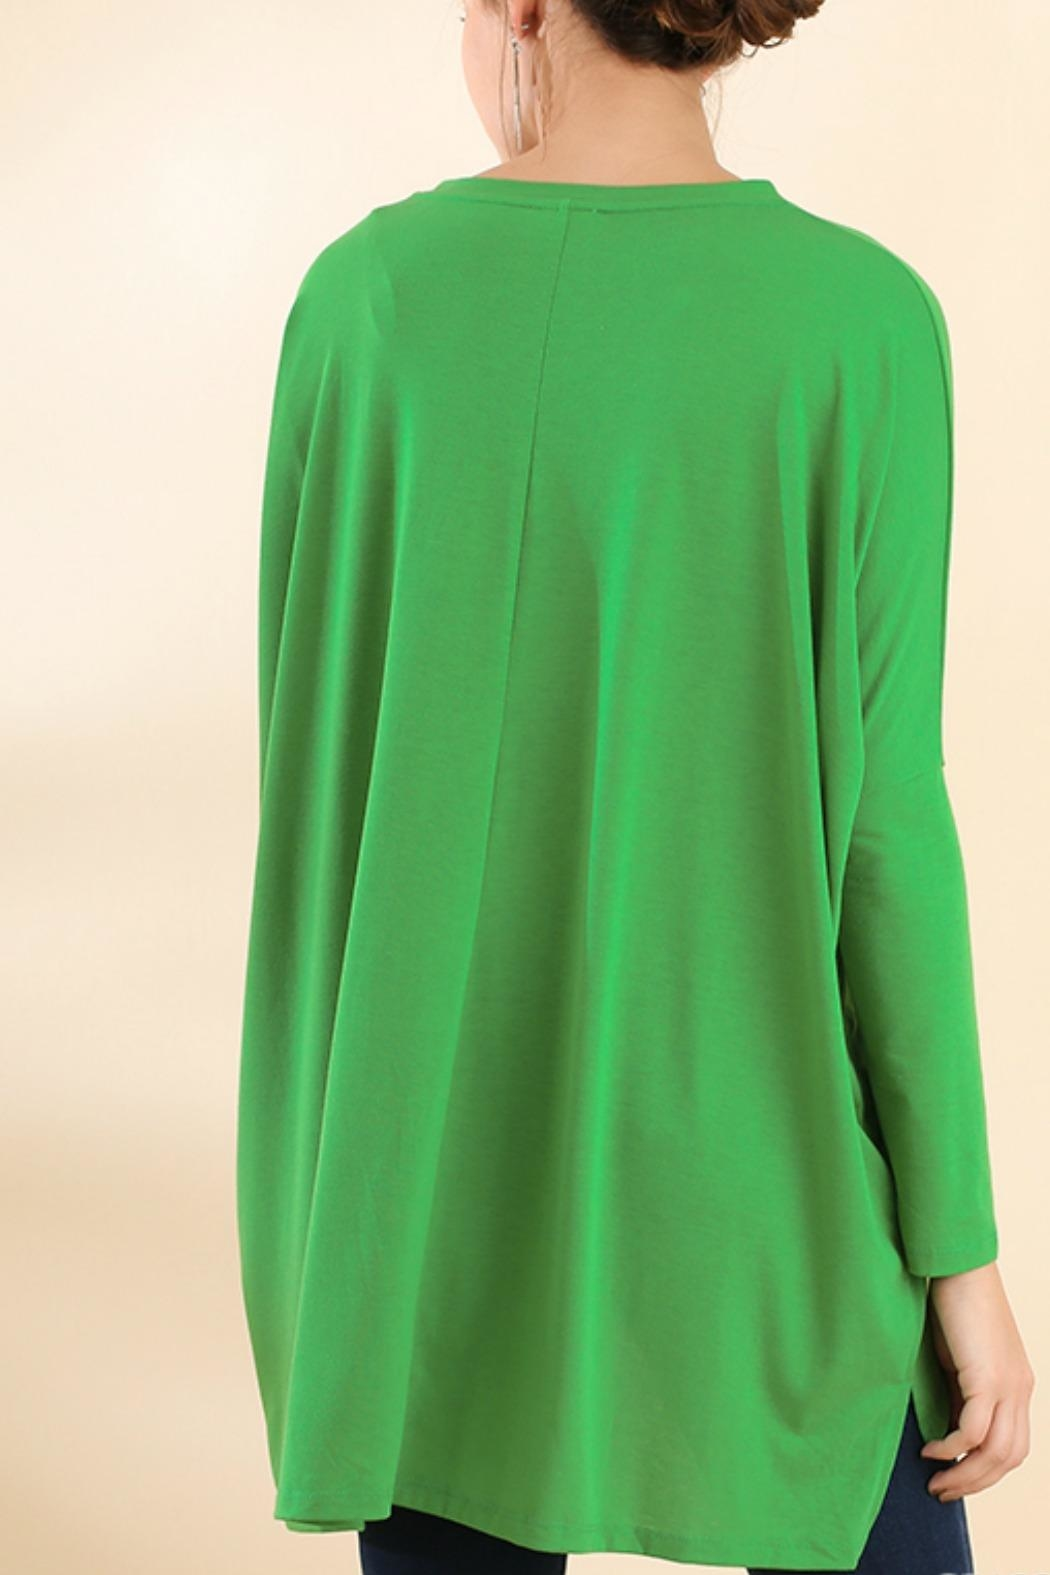 Umgee USA Kelli Green Tunic - Front Full Image